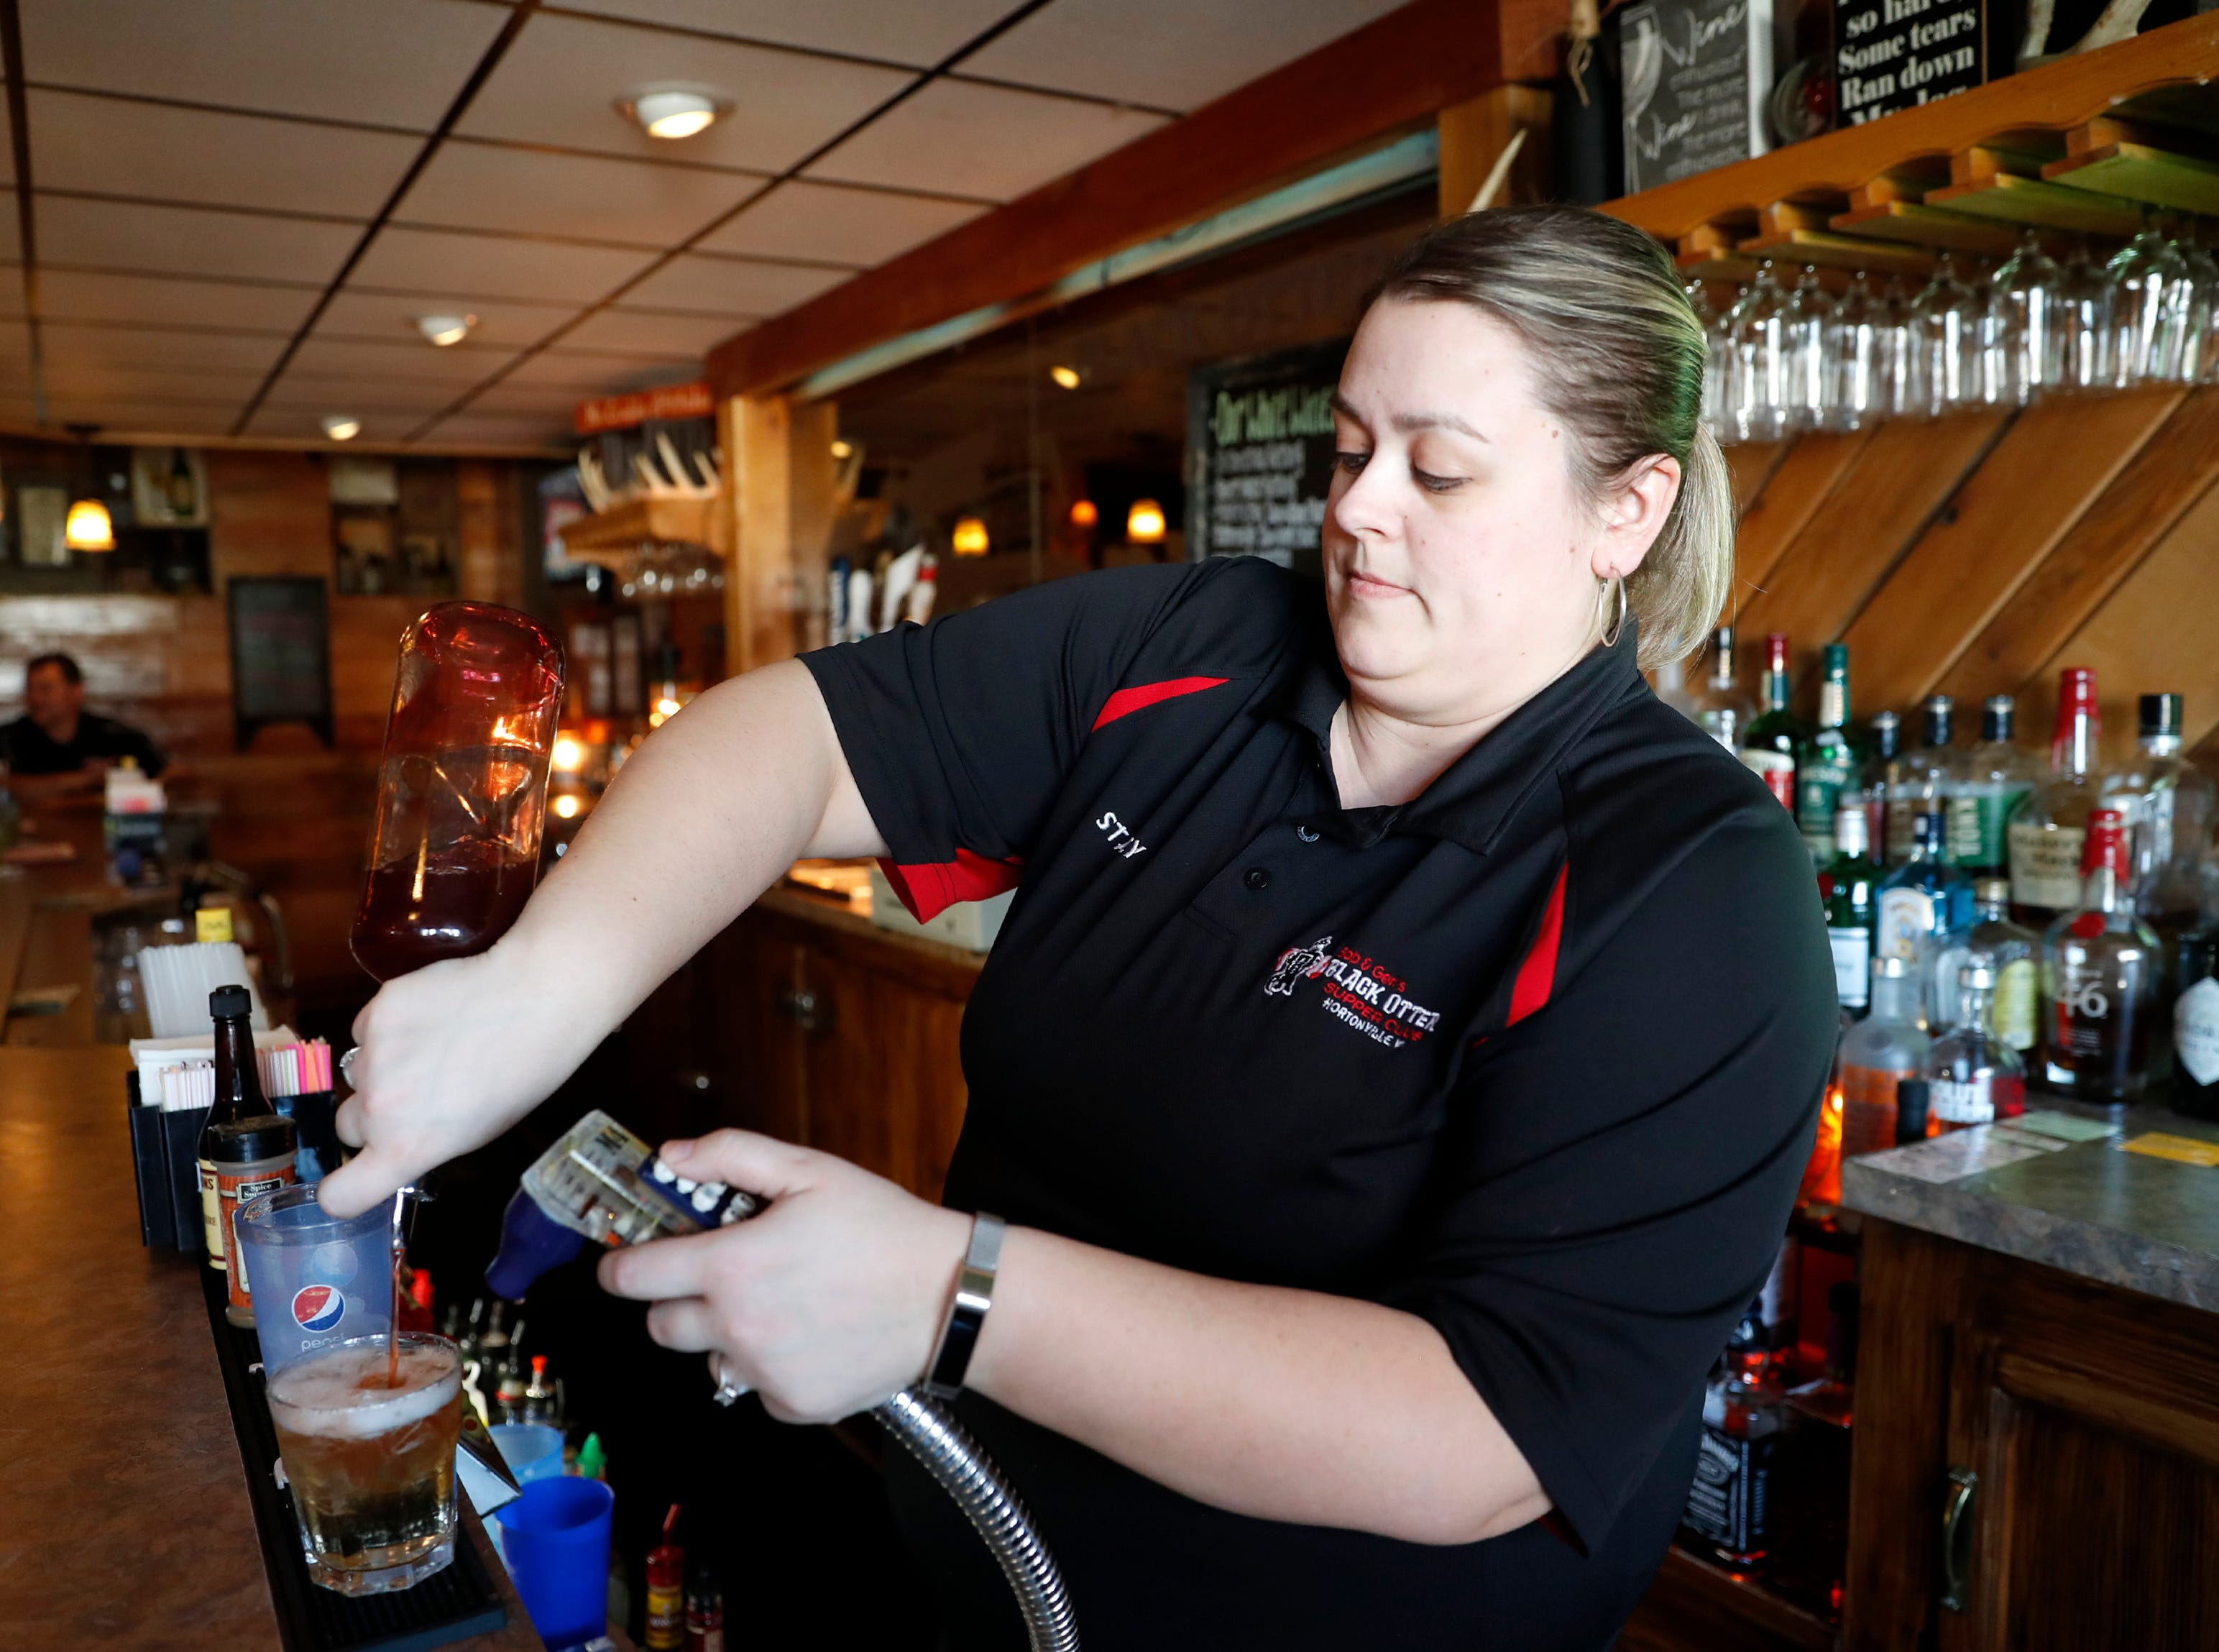 Stacy Jens, a bartender at Black Otter Supper Club, pours a drink for a customer Thursday, March 21, 2019, in Hortonville, Wis. 